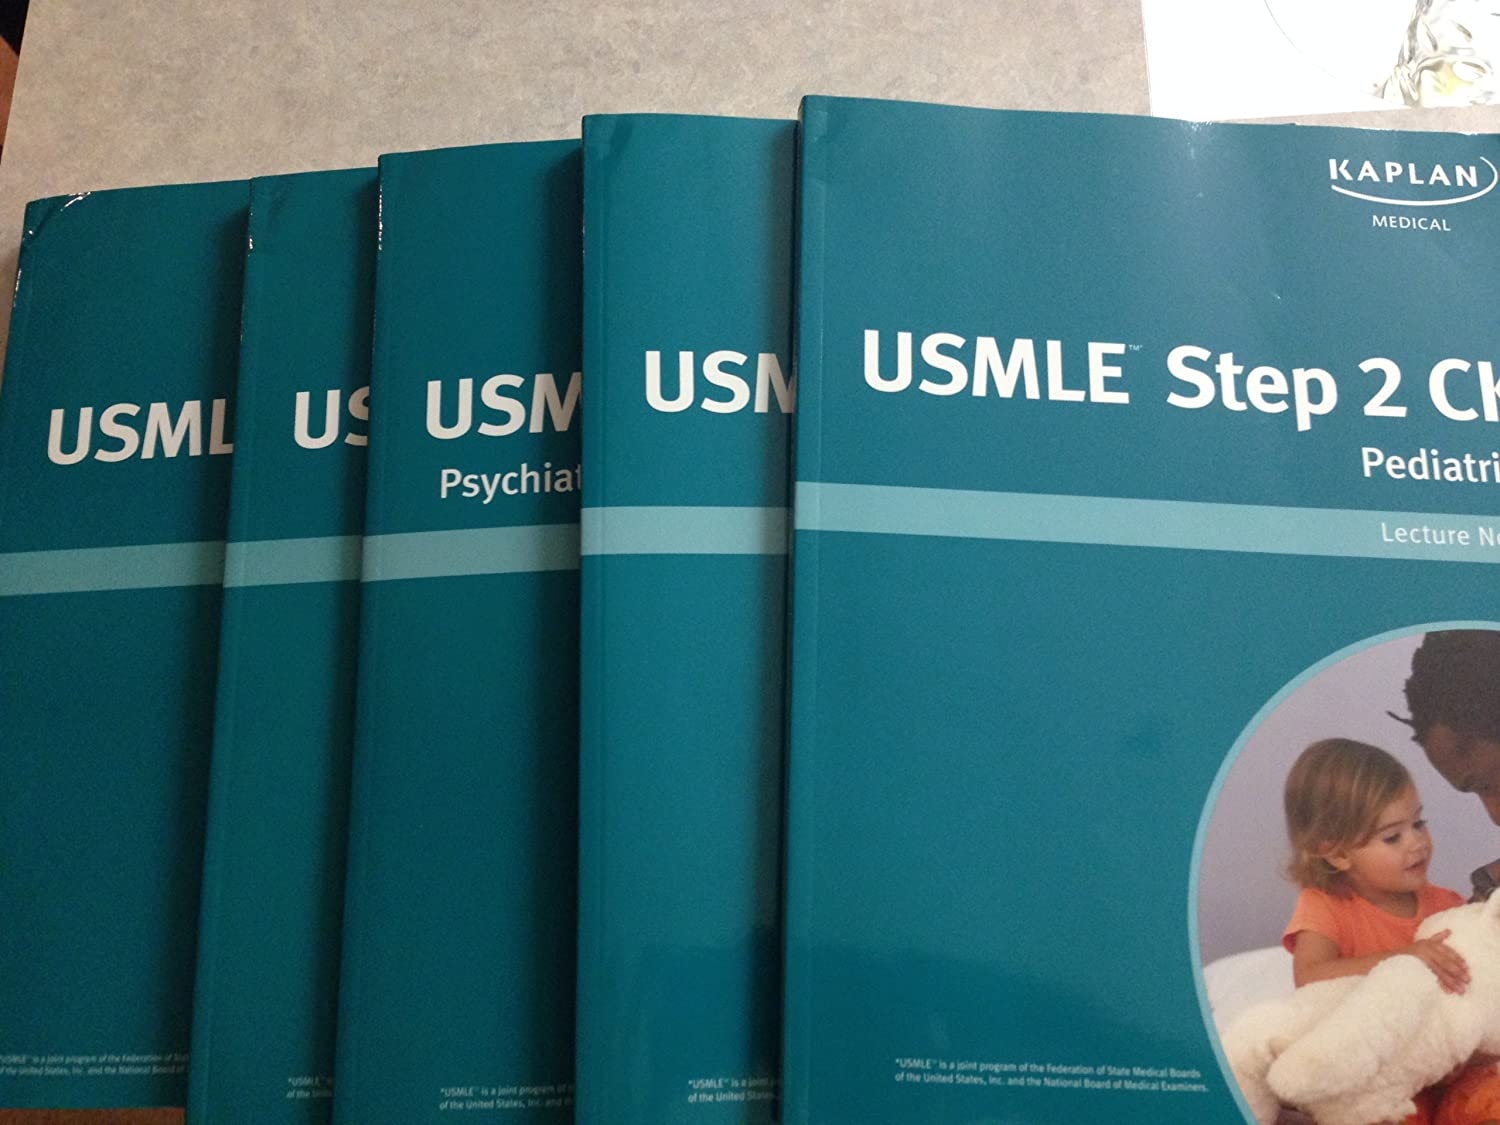 KAPLAN USMLE STEP 2 CK 2013 Edition Free Download 91lFUMVDfjL._SL1500_